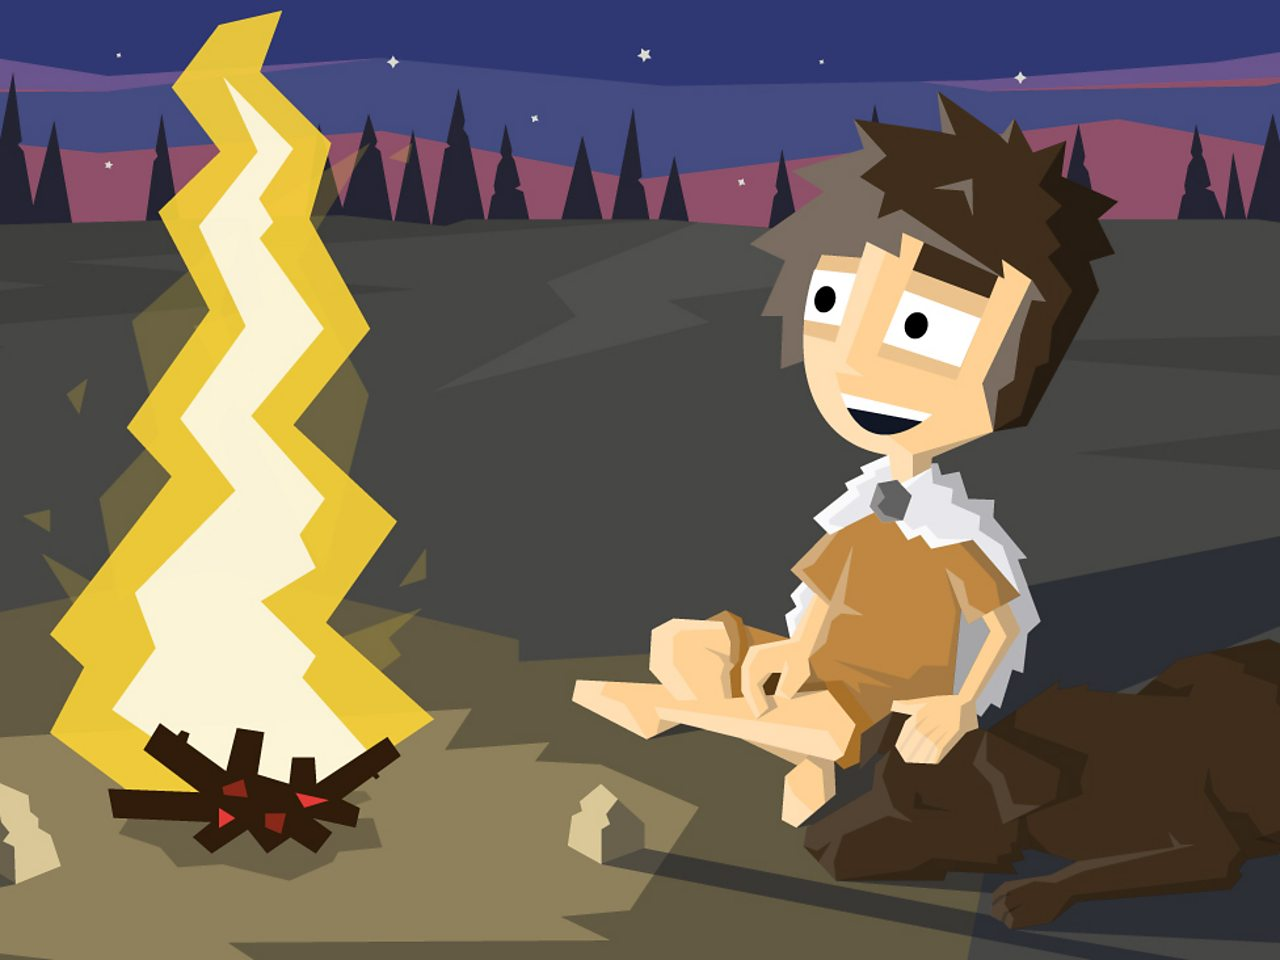 A prehistoric boy sat with his dog near a camp fire